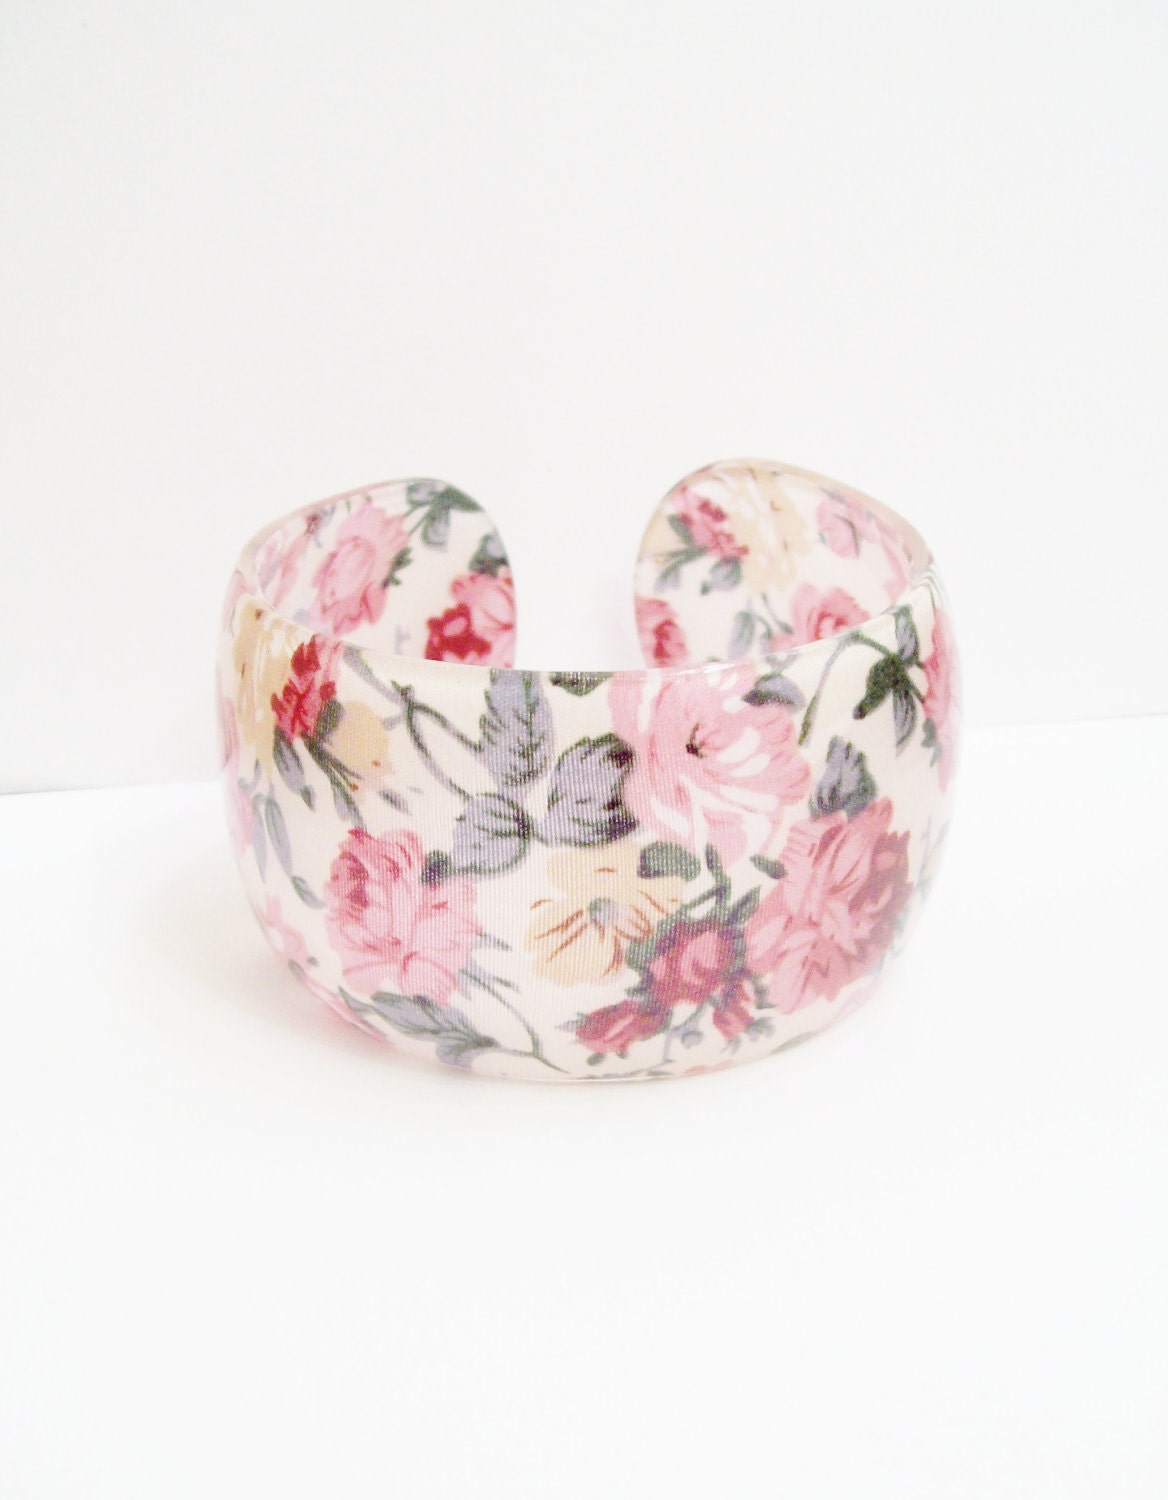 Shabby Chic Floral Cuff Bracelet, Indie Vintage Inspired, Red Yellow Flowers Pink Roses Floral Lace, Shabby Chic, Delicate Gift Idea, Resin